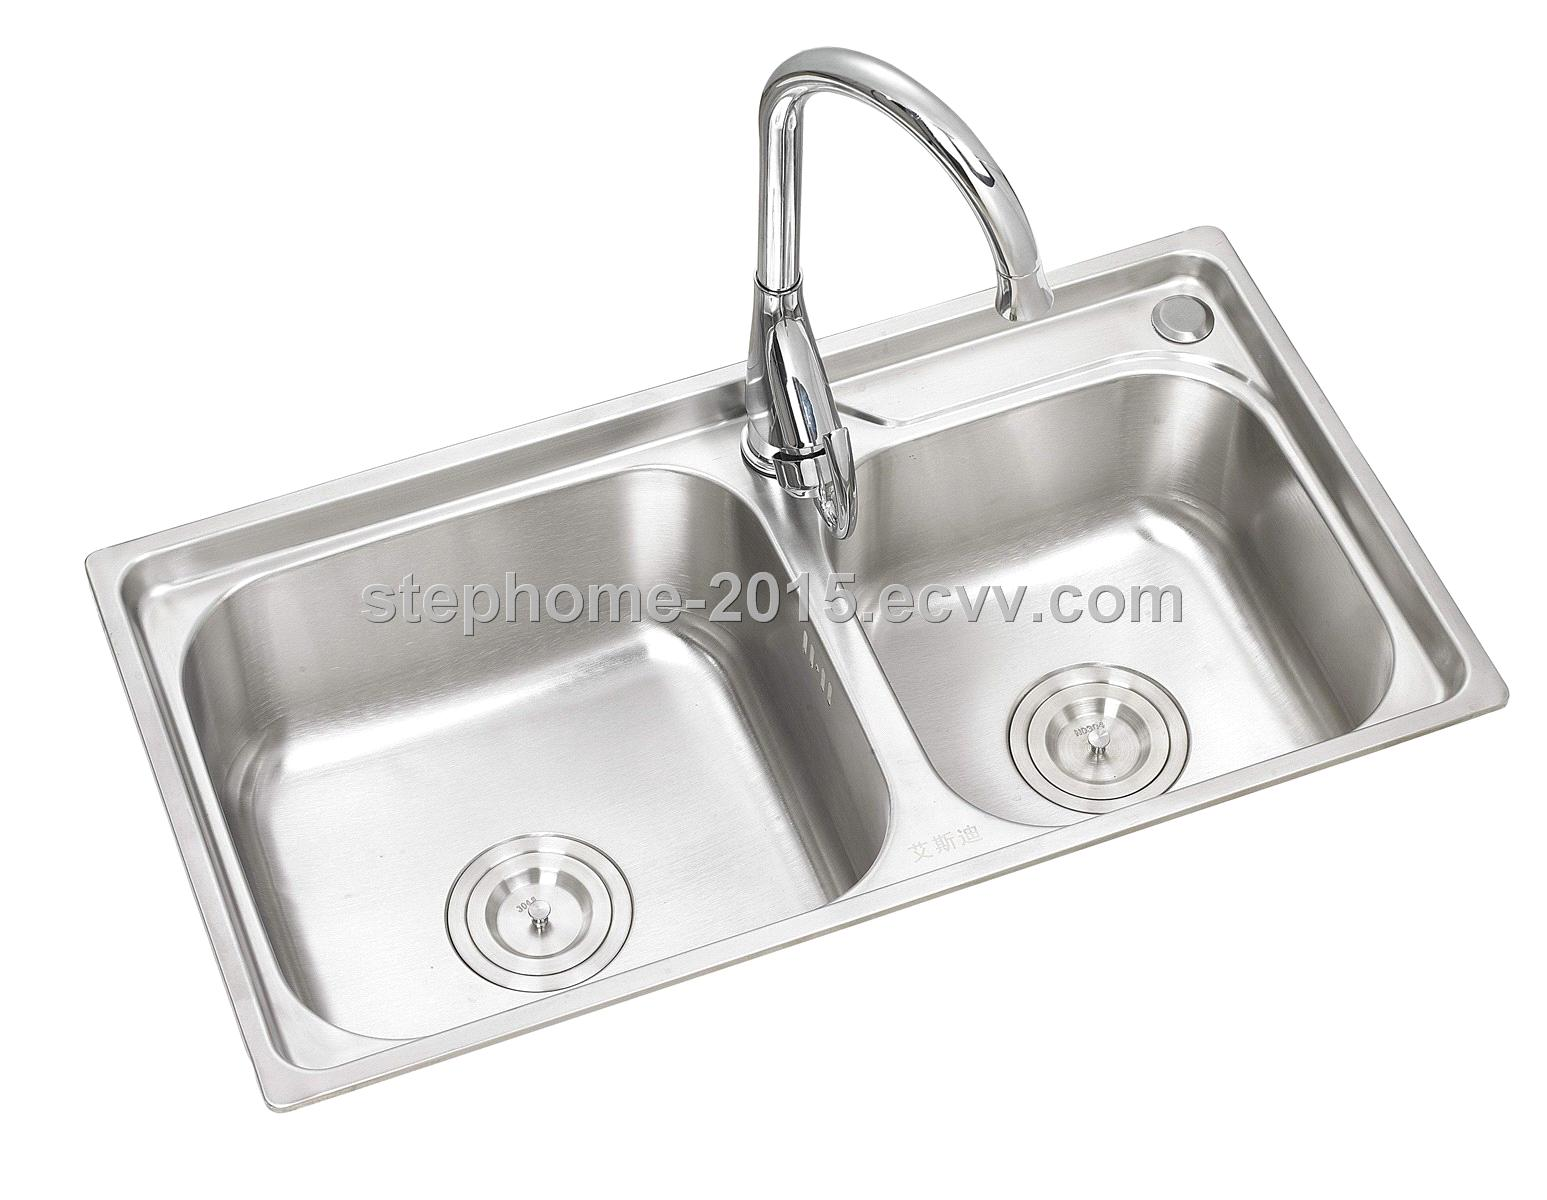 High quality double bowls kitchen stainless steel sink, Imported S/S(Model no.: 6838B)